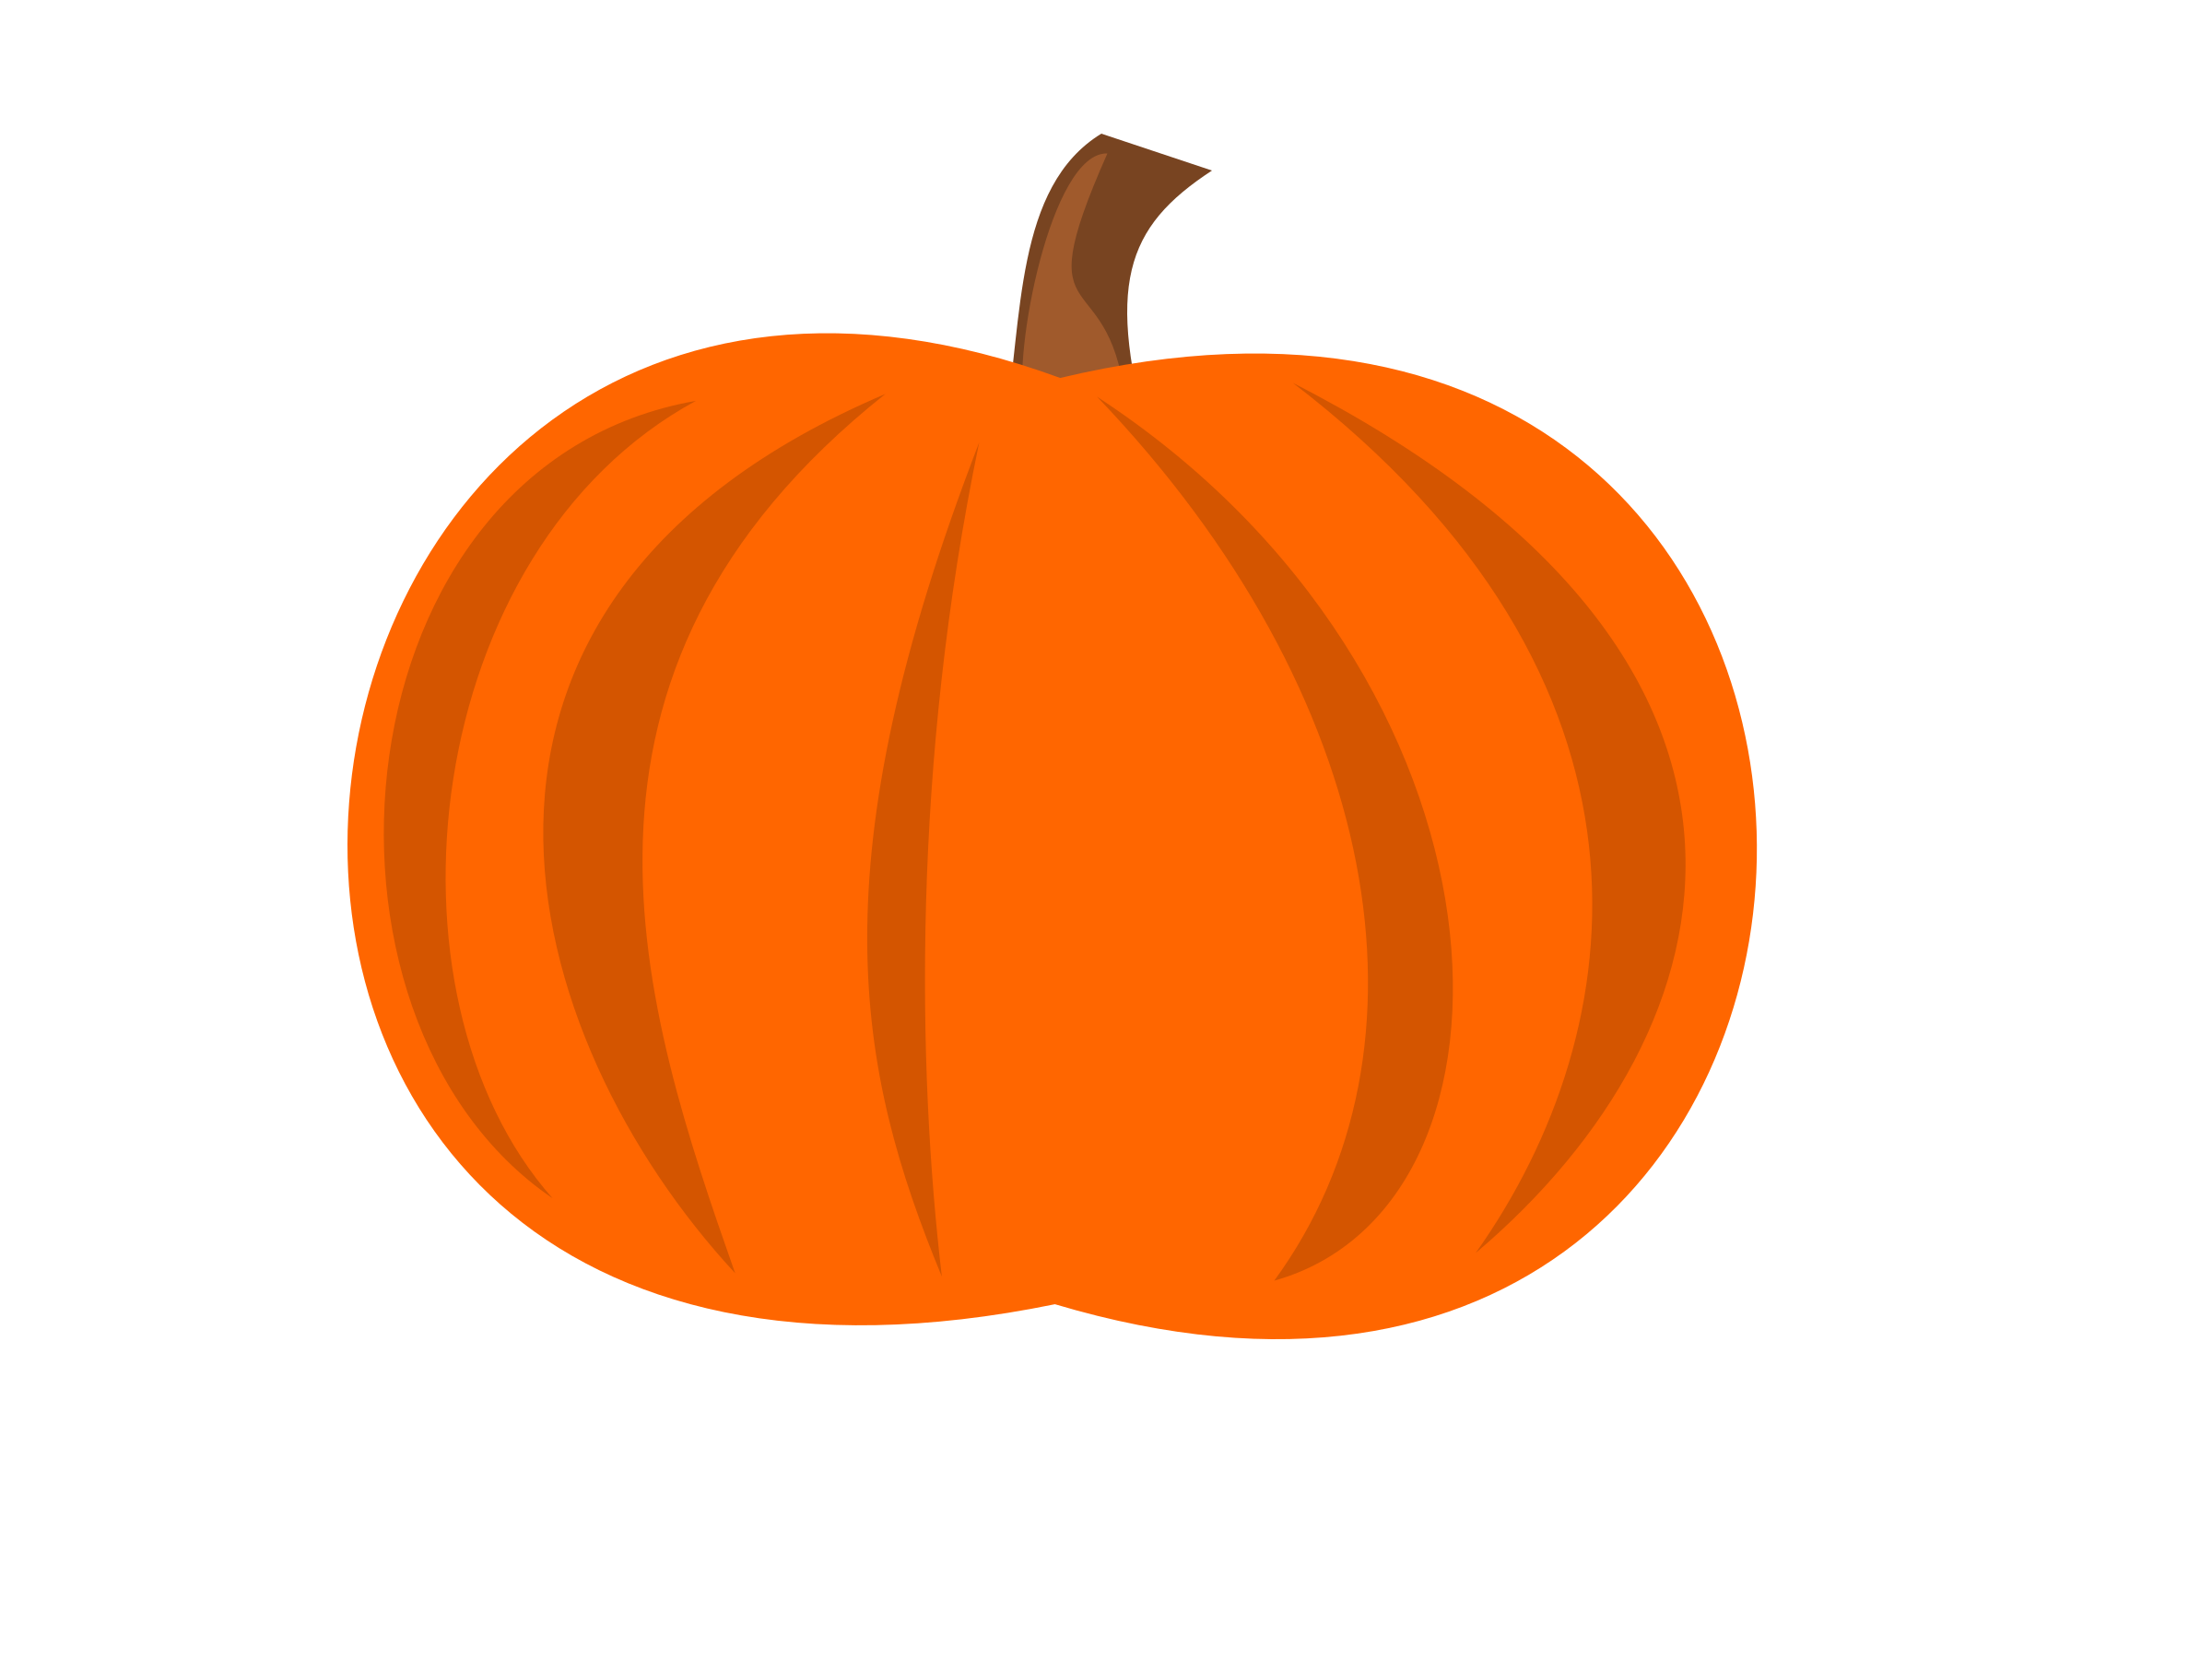 Pumpkin clipart #6, Download drawings